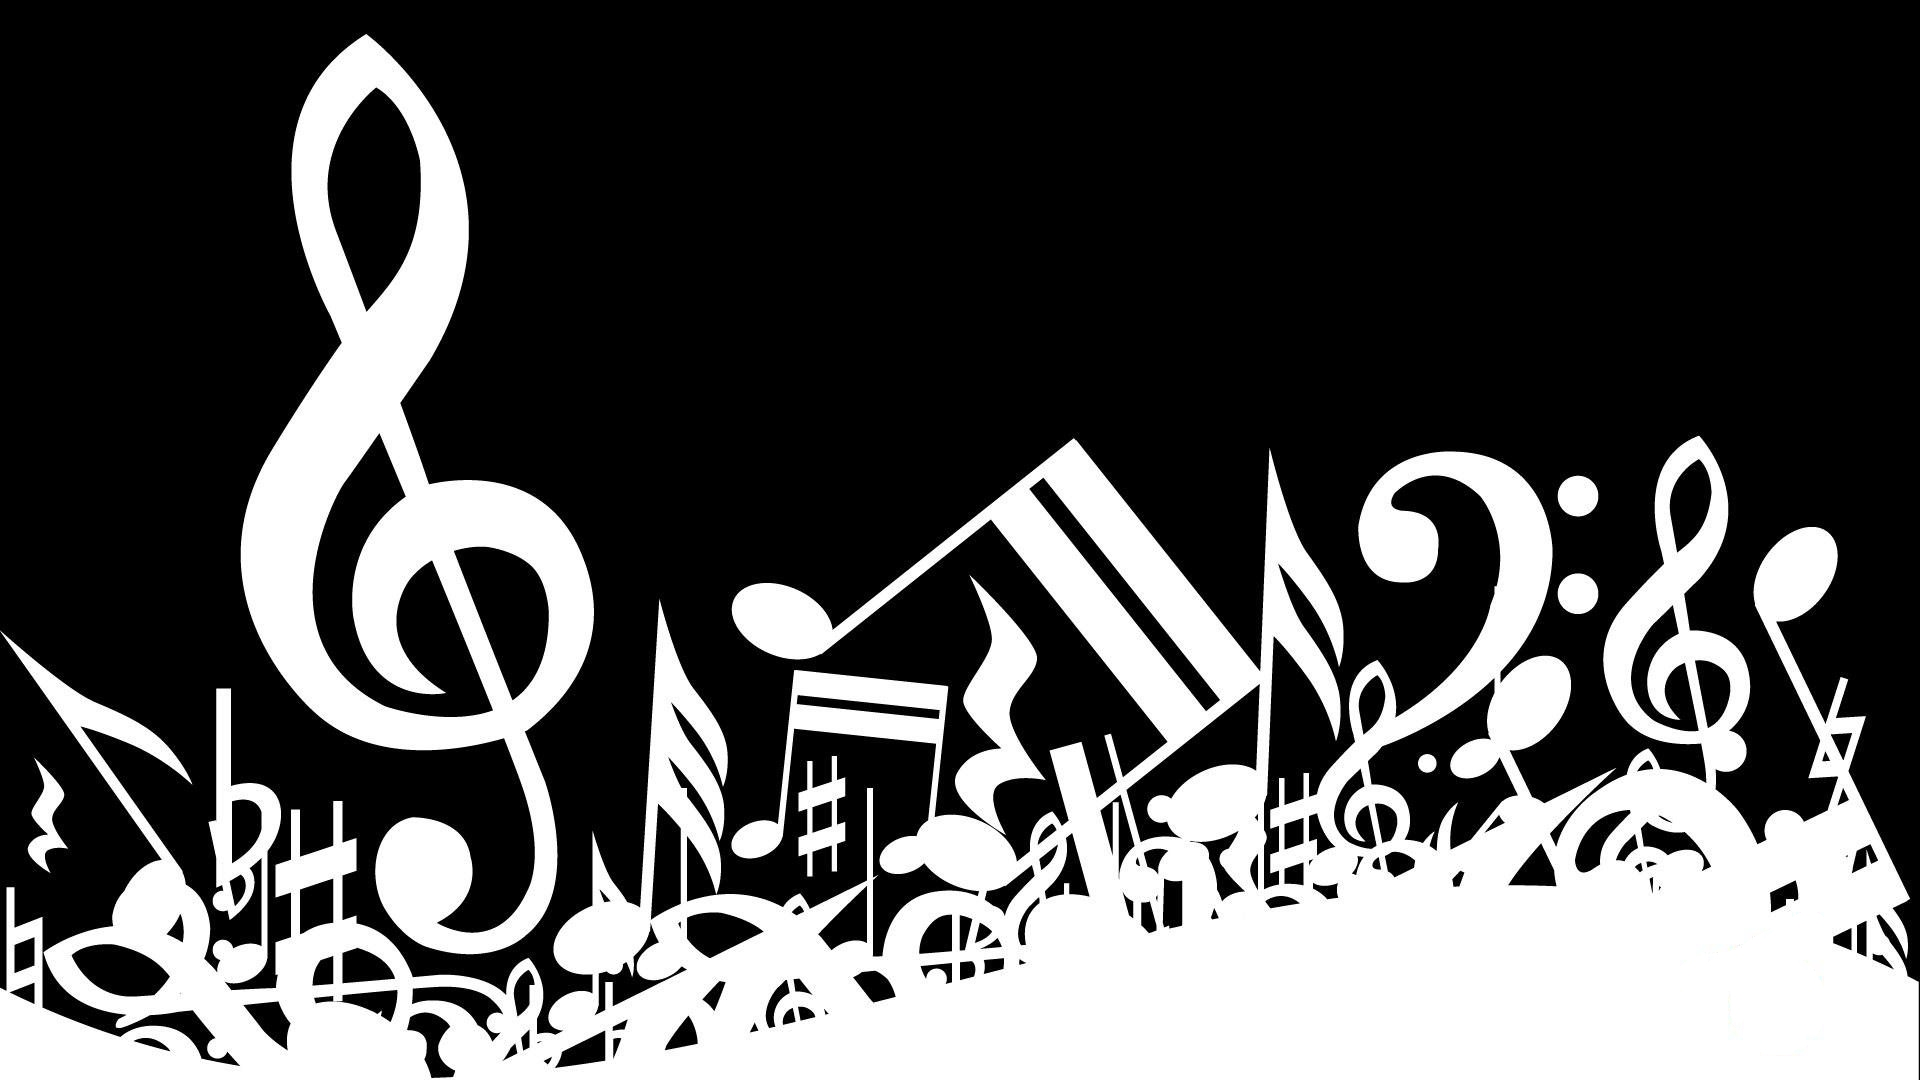 Music Notes Wallpaper Posted By Ryan Mercado